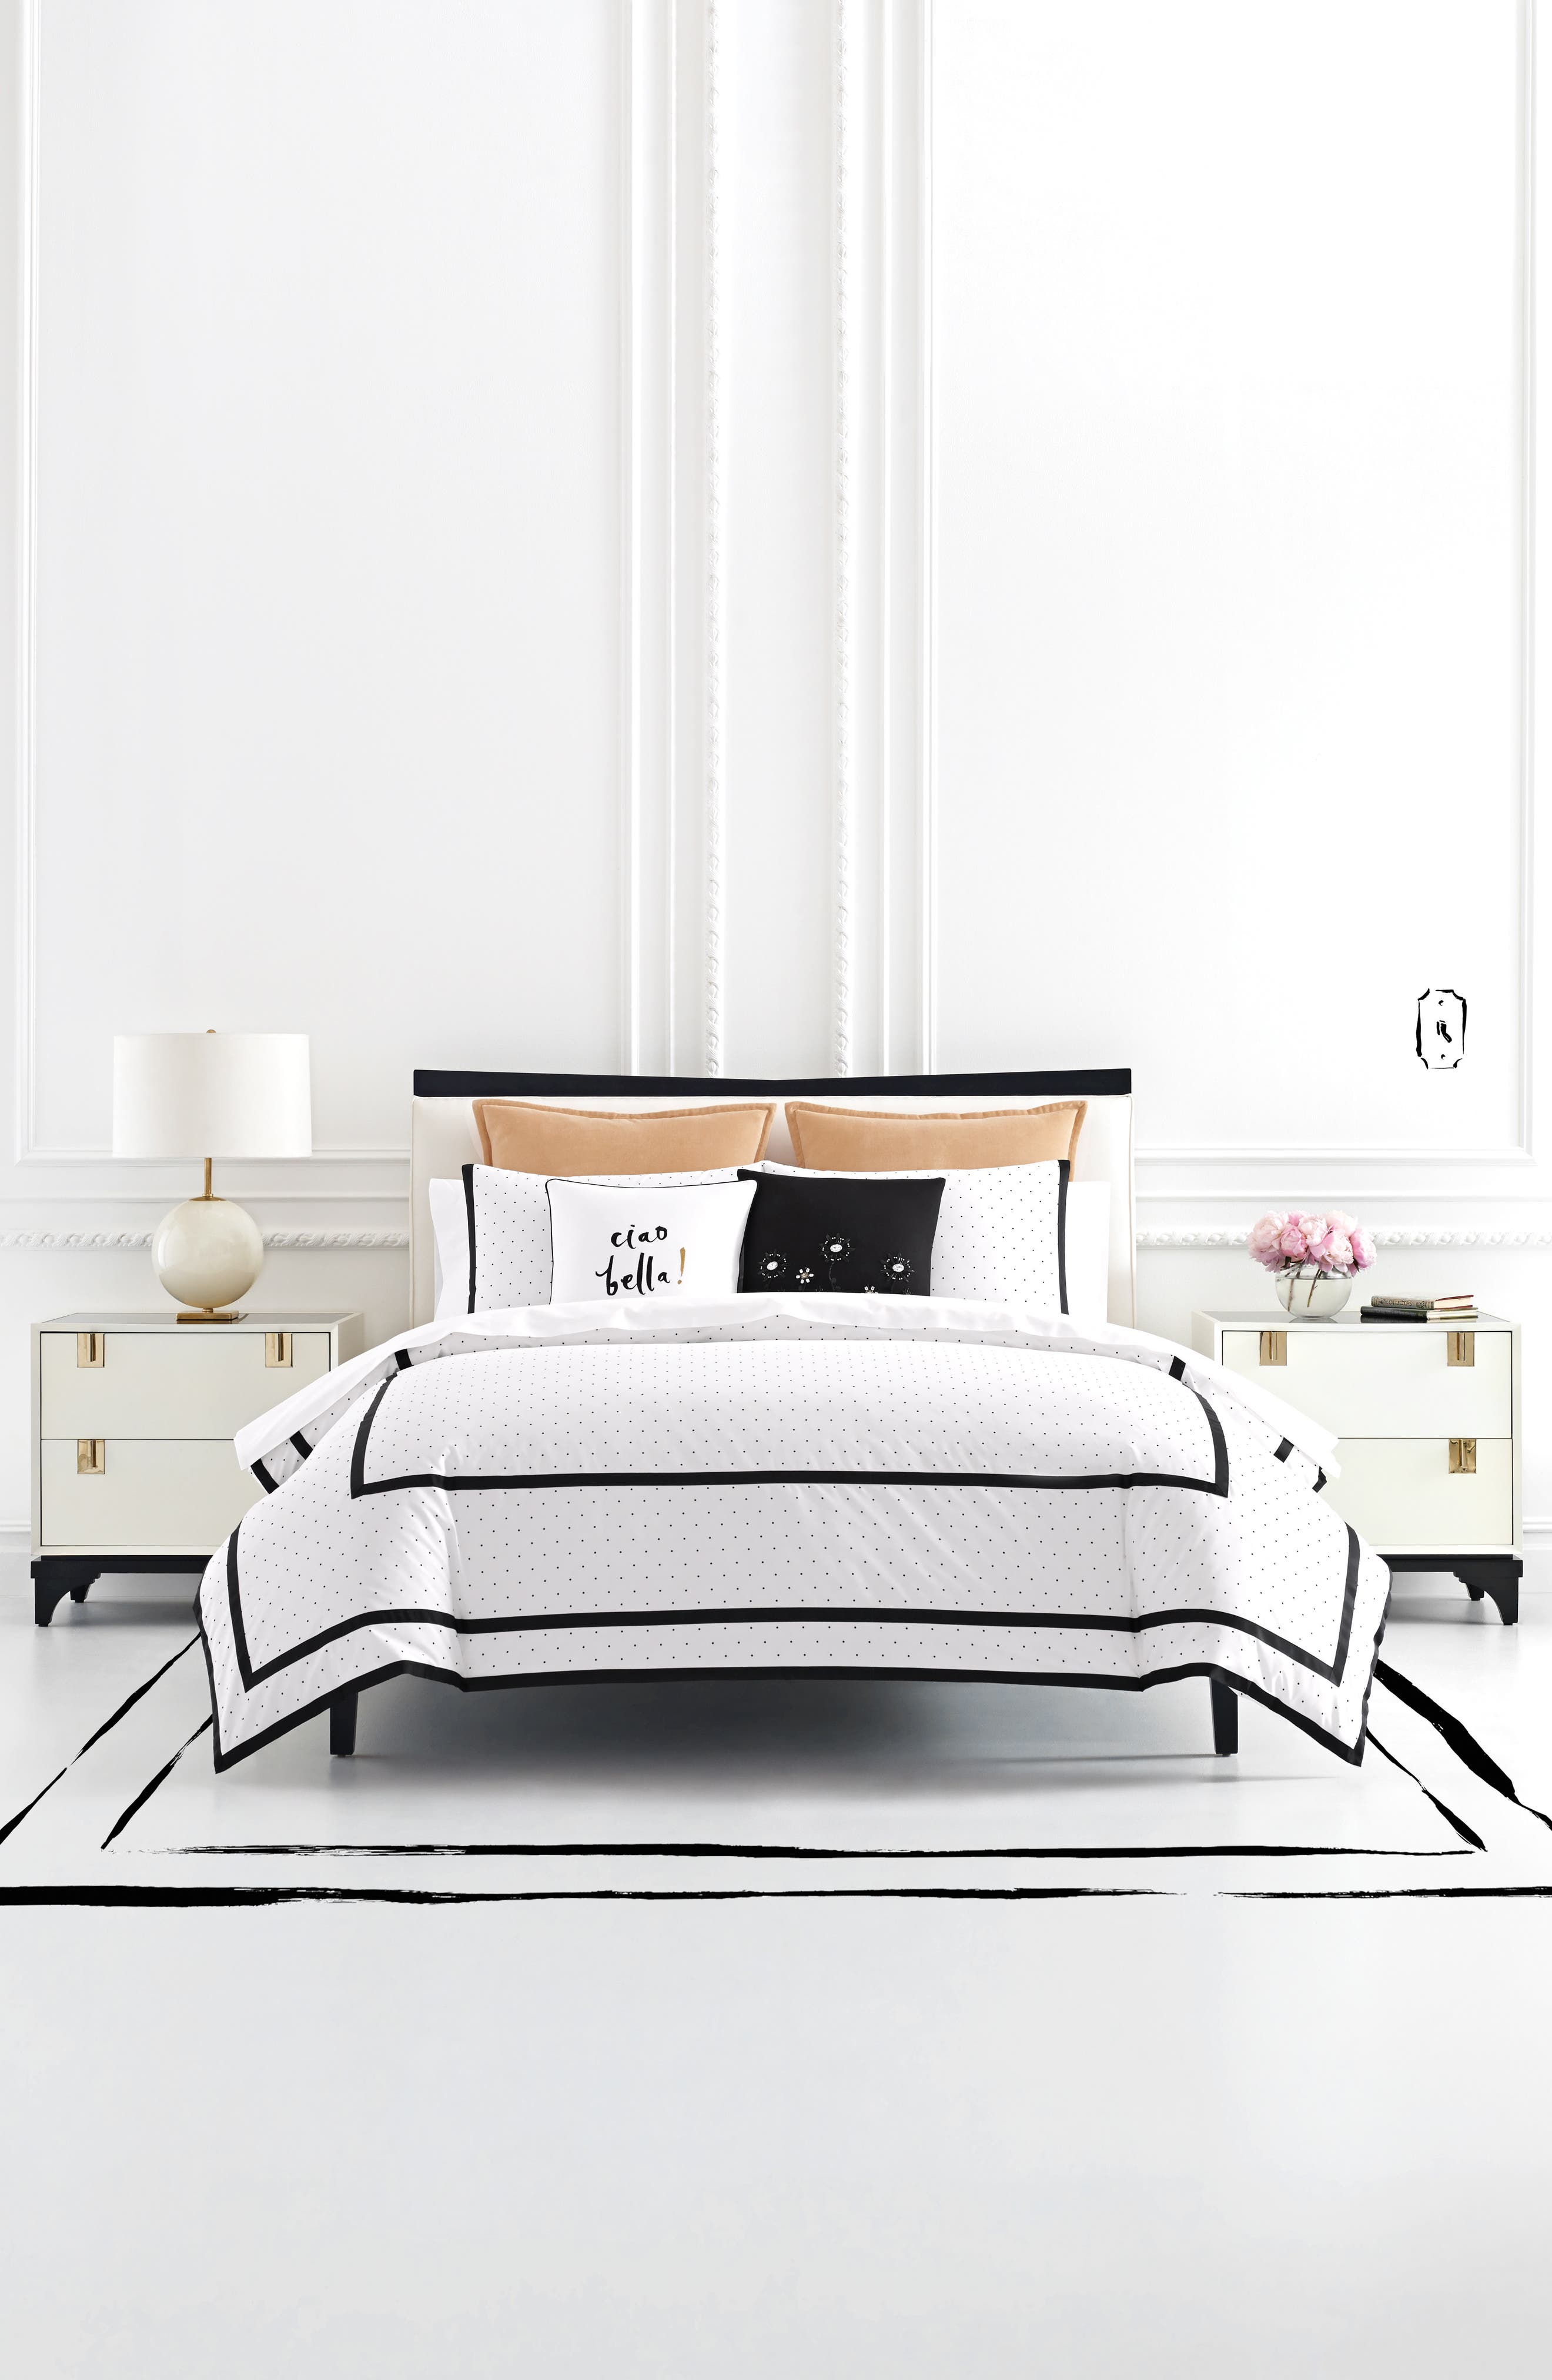 kate spade new york dot frame duvet cover & sham set